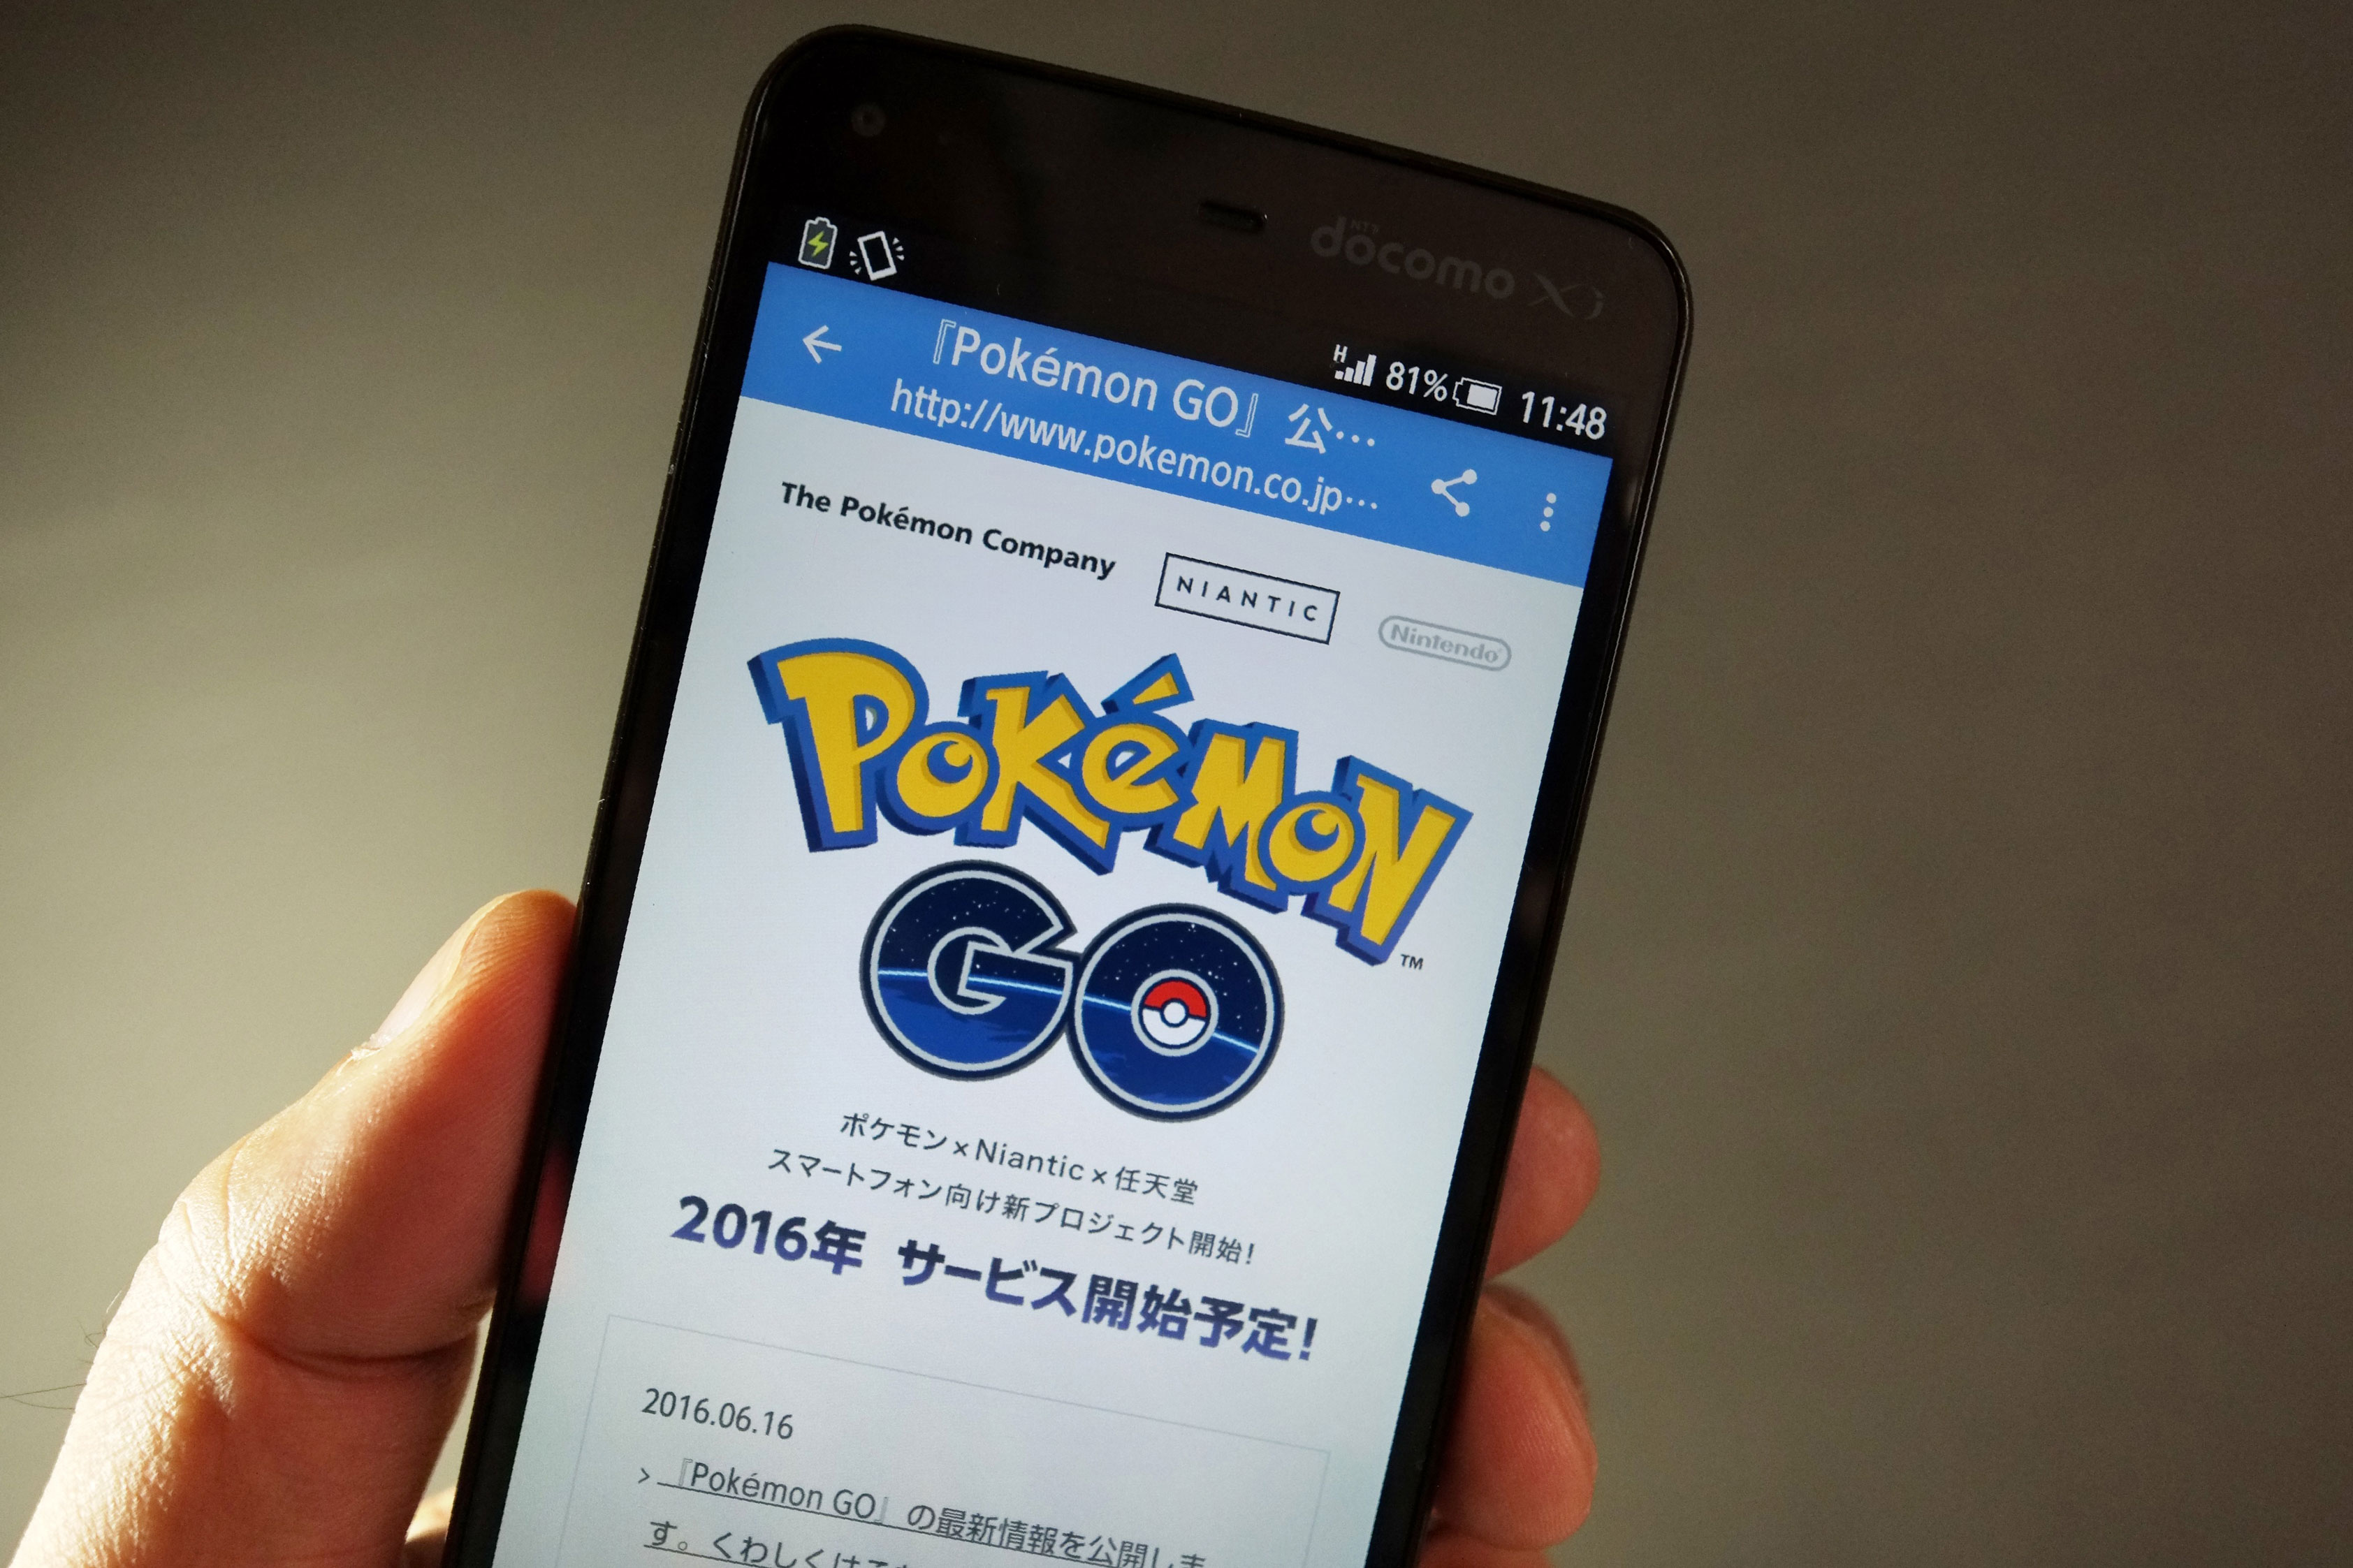 Pokémon Go will launch in Japan tomorrow with game's first